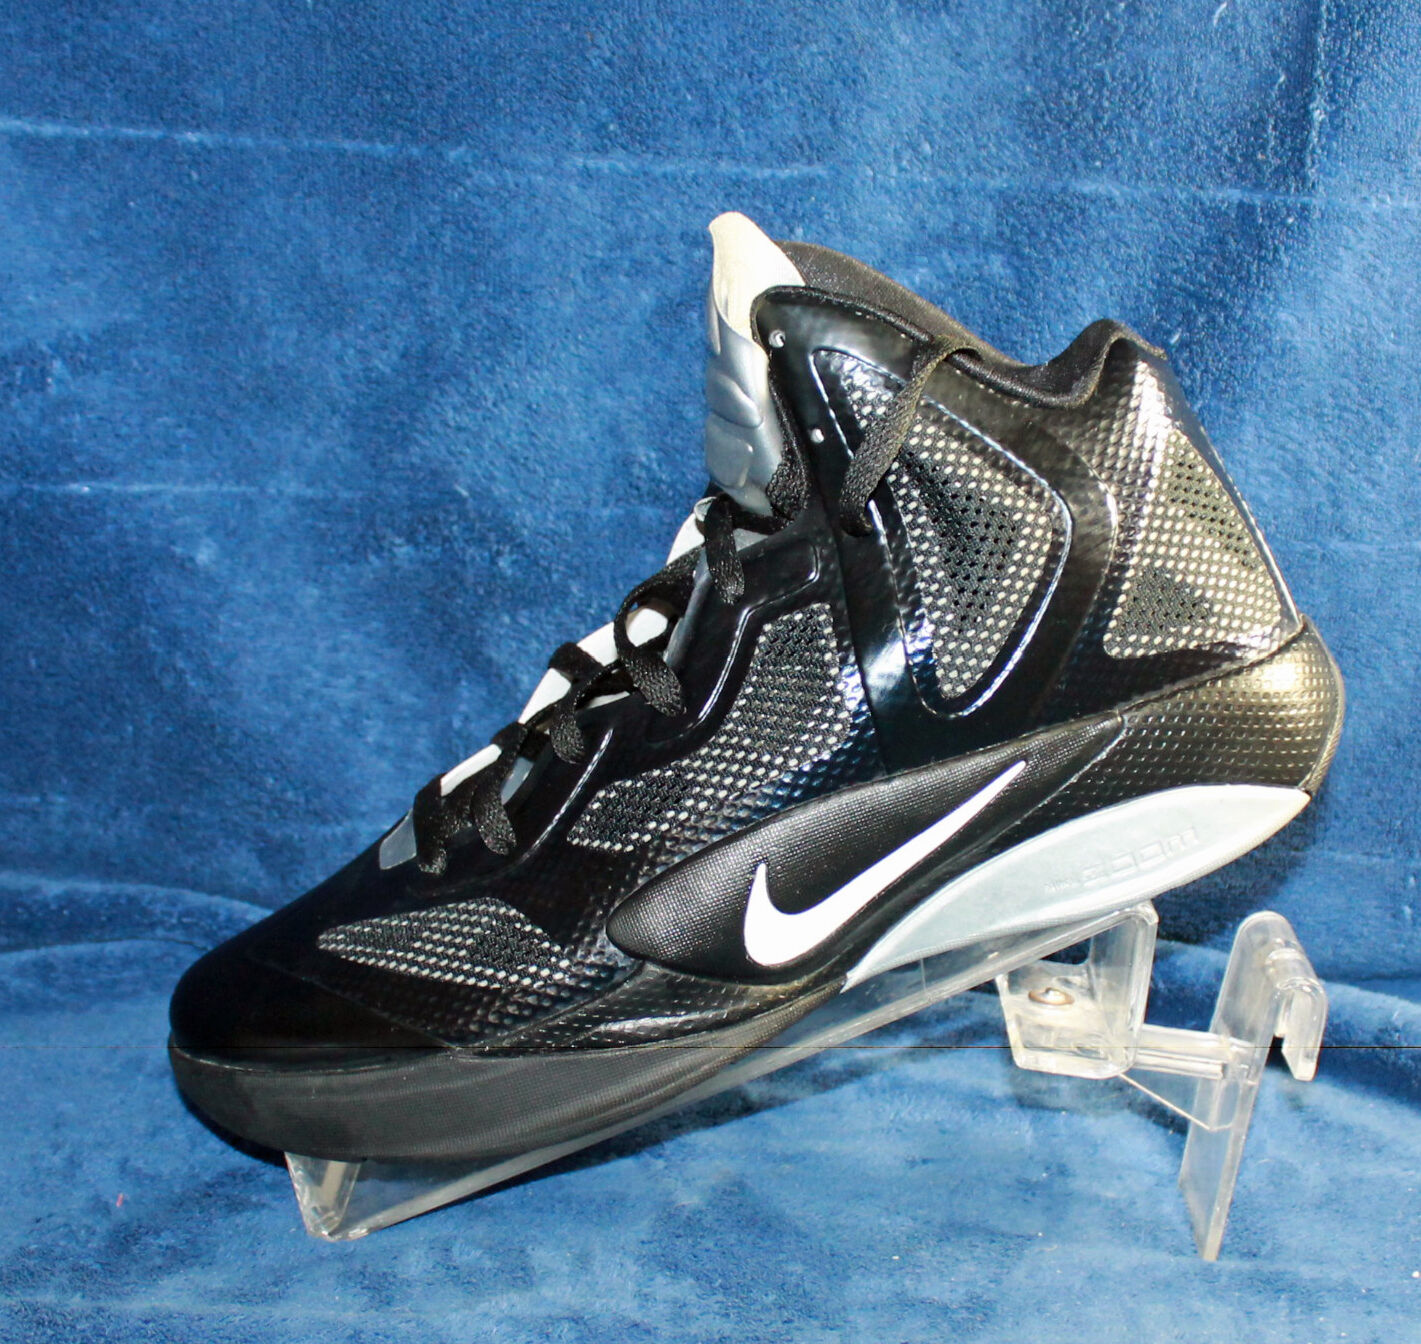 Mens Nike Zoom Hyperfuse 2011 Basketball Shoes - 454136-007